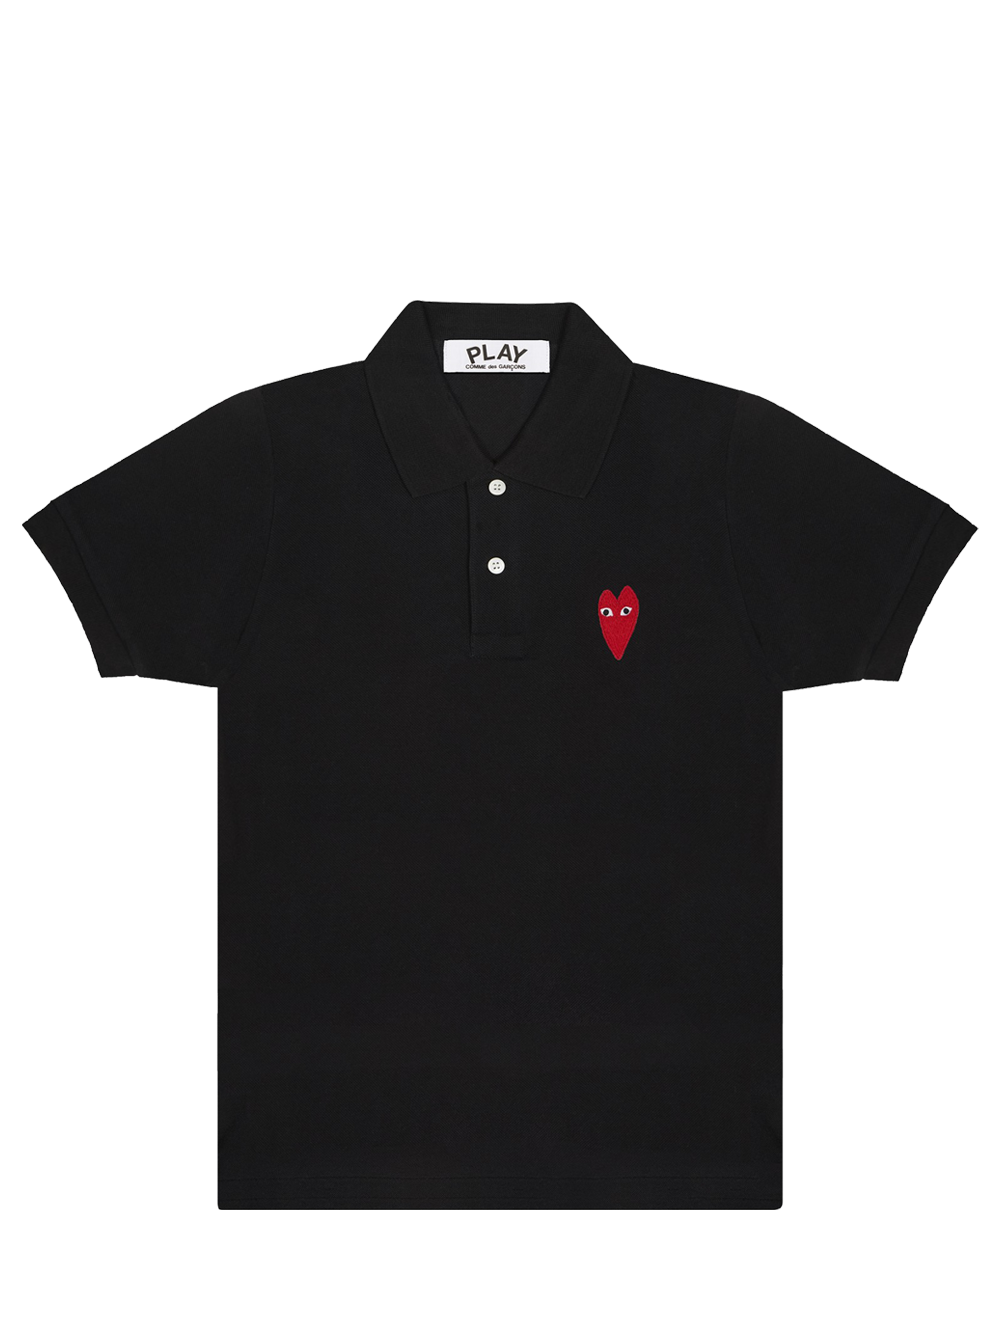 PLAY P1T232 PLAY POLO SHIRT BLACK